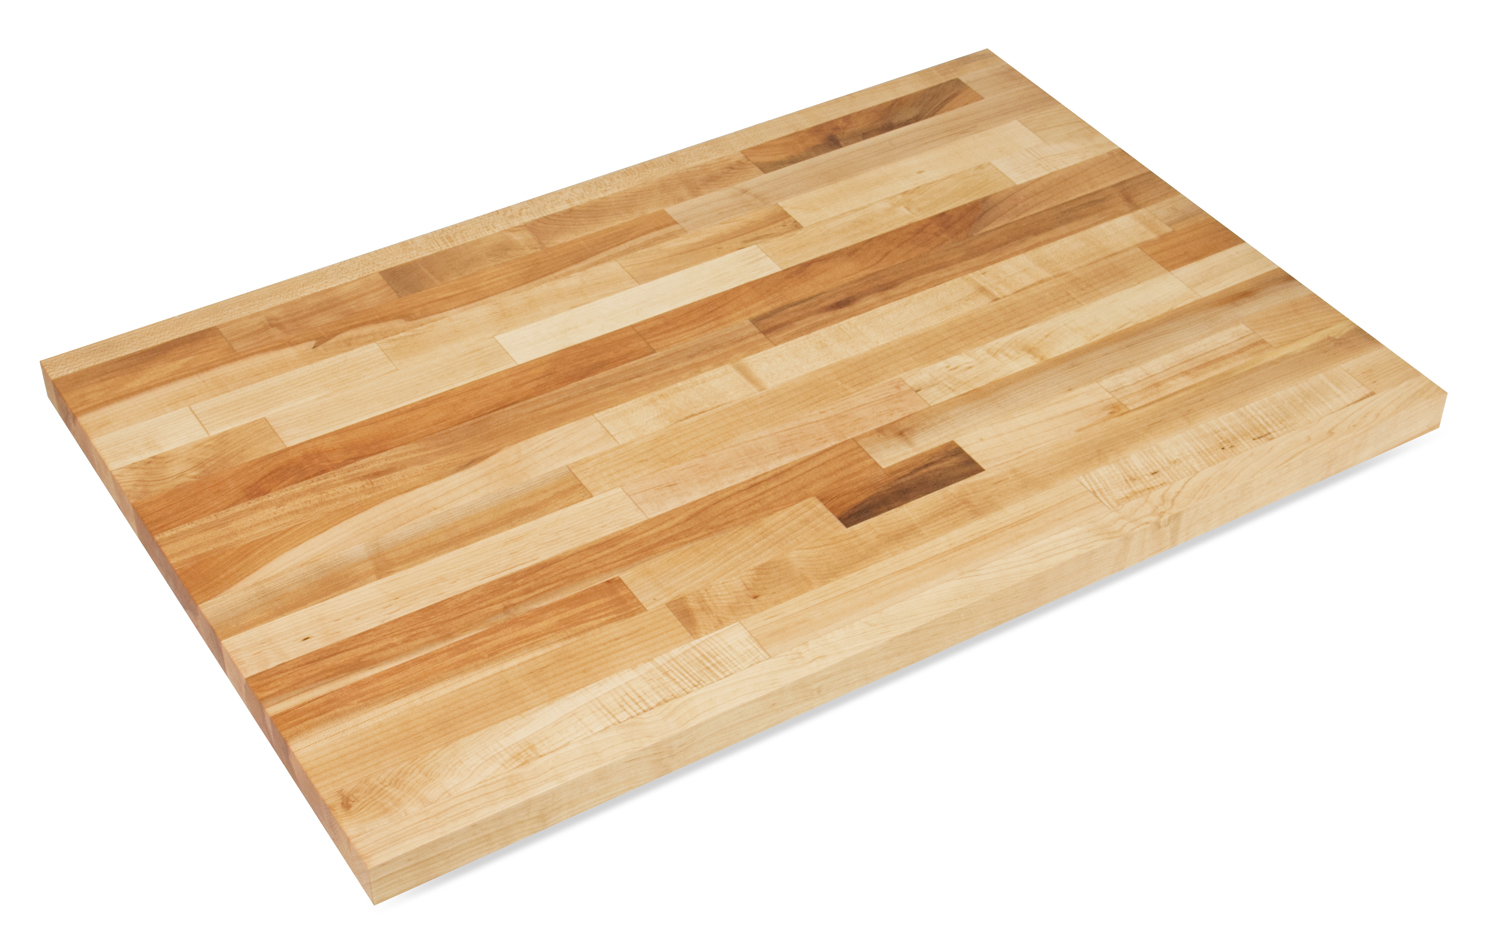 maple foodservice counters 1.5 inches thick